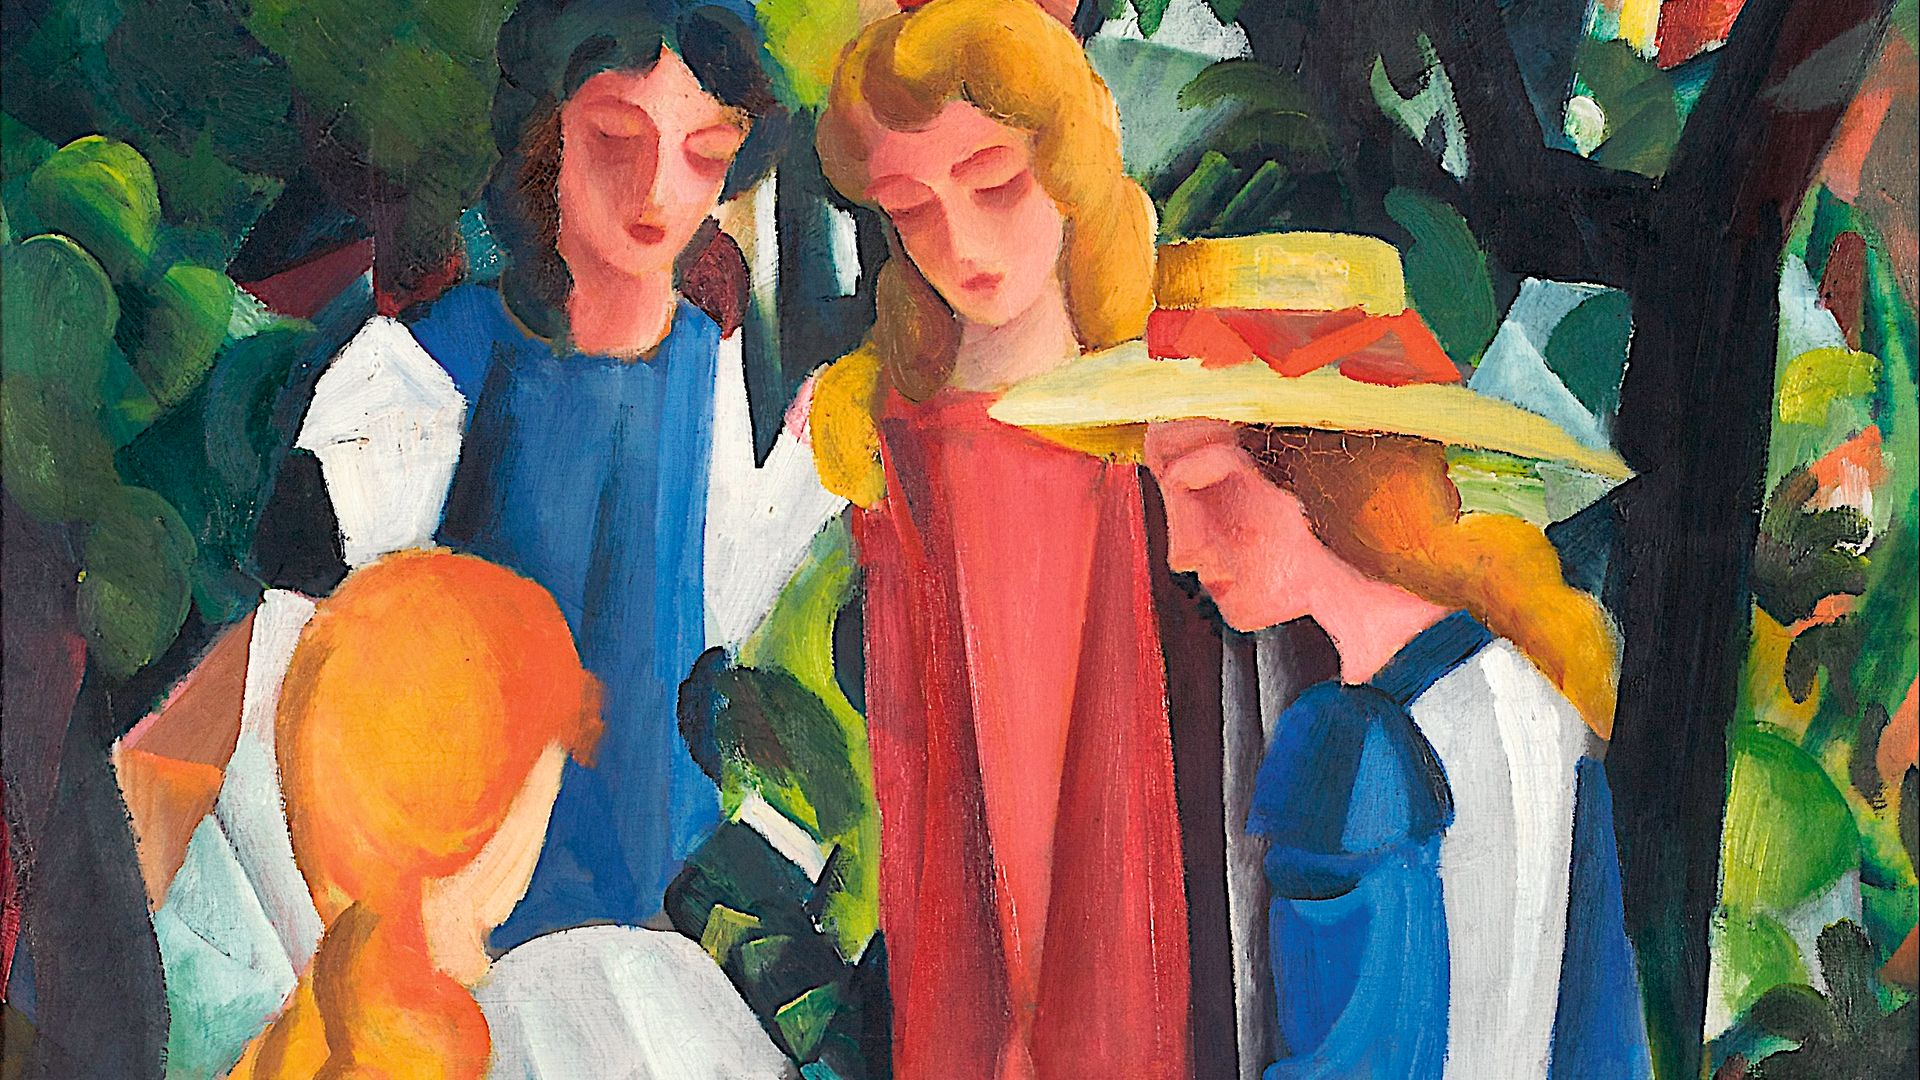 A painting by August Macke, the German expressionist who died in the First World War, aged 27 - Credit: ACC Art Books